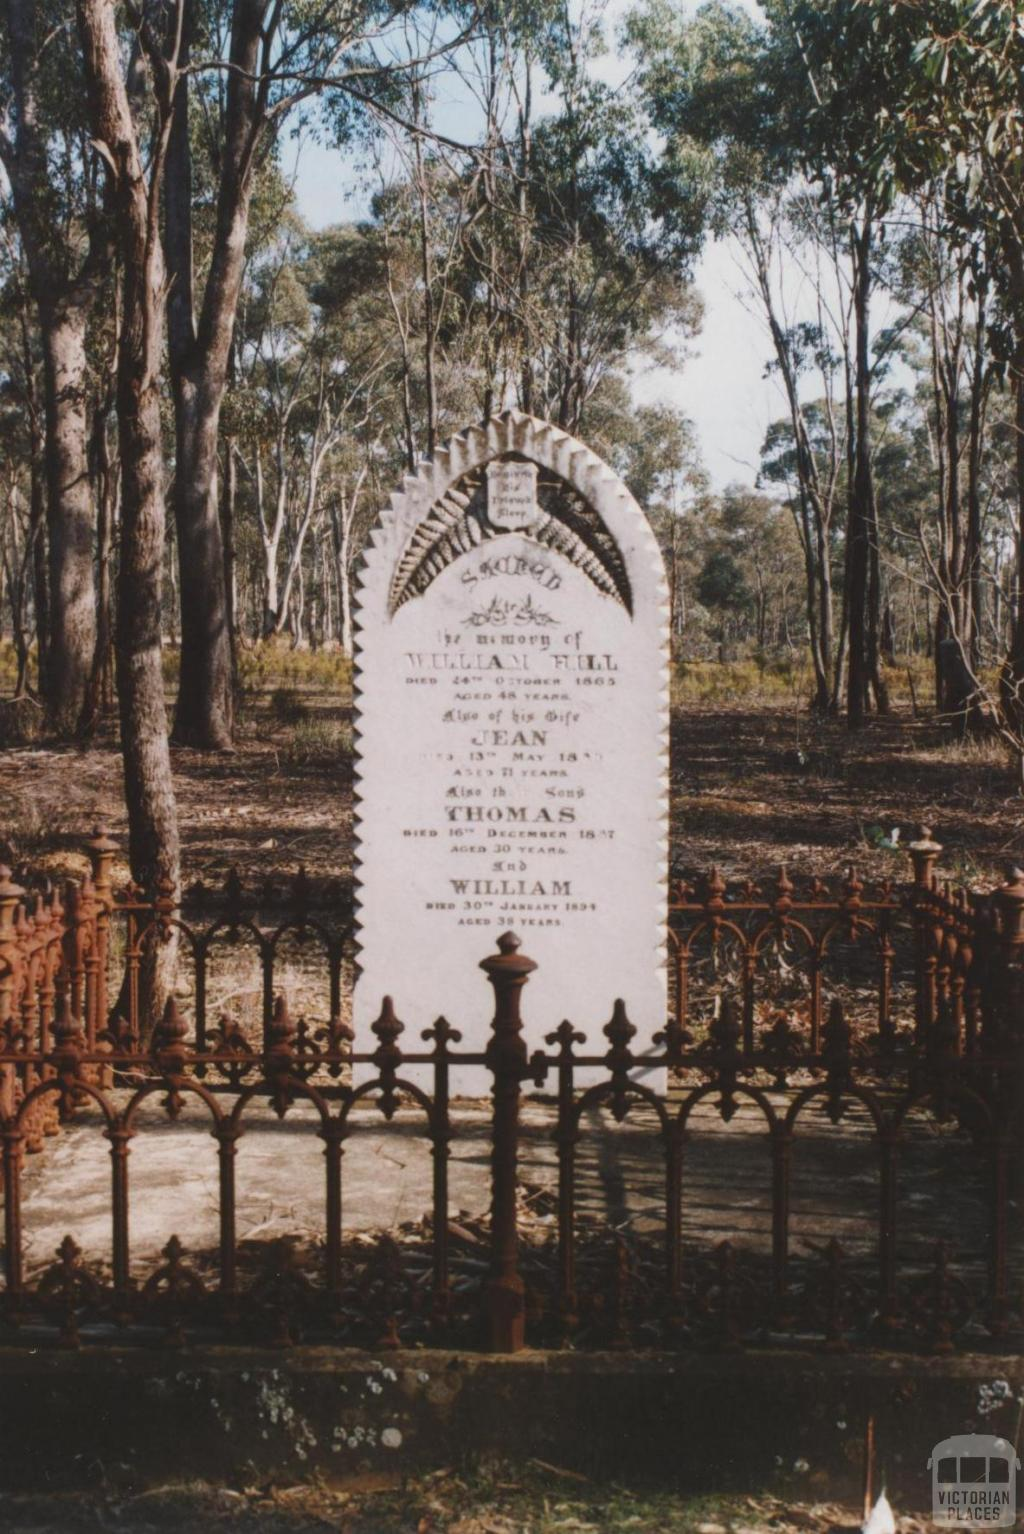 Old Dunolly cemetery, 2010